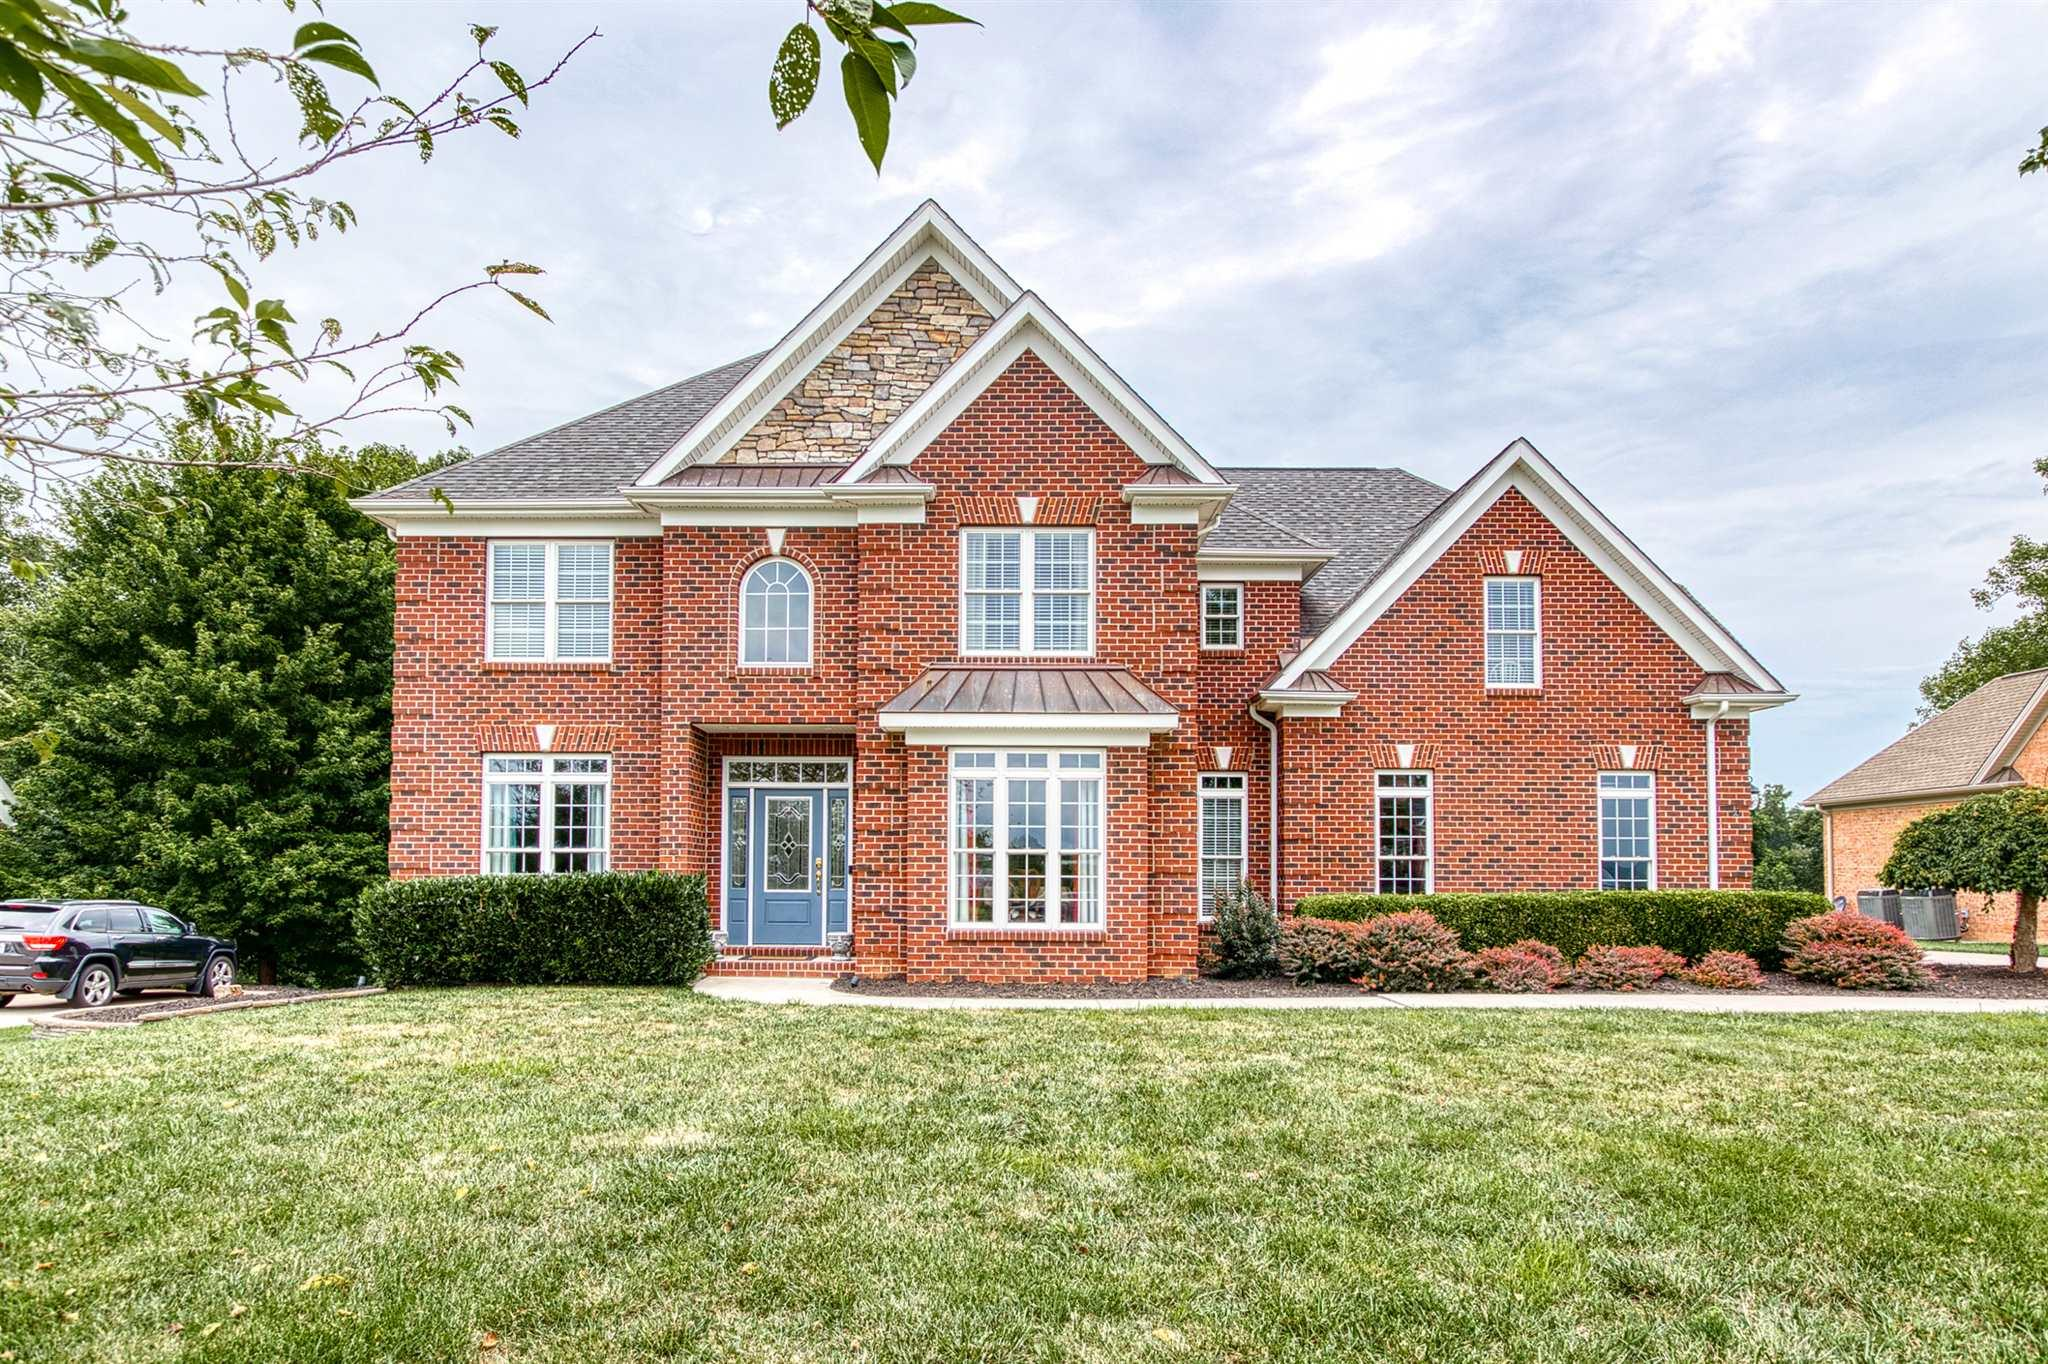 Fabulous 5 BR home located in prestigious Heron's Landing.   Open floor plan, beautiful kitchen with cherry cabinets , large island, large pantry, granite tops, SS appls. (dishwasher brand new), tile backsplash and tile floors, large master suite with sitting area, master bath has double sinks and vanity area, walk-in tile shower, guest bath with double sinks, lower bedroom with french doors, huge closet off lower bath, brand new carpet, fresh paint and new front load washer and dryer.  Walk to the pool and Pete Dye River Course of VA Tech. Heron's Landing is the New River Valley's best kept secret offering what no other subdivision offers including Distinctively Dye golf course, gorgeous river and mountain views, pool, community center, sidewalks, curbing, and street lights.  Centrally located - Blacksburg 20 mins., Radford 10 mins.